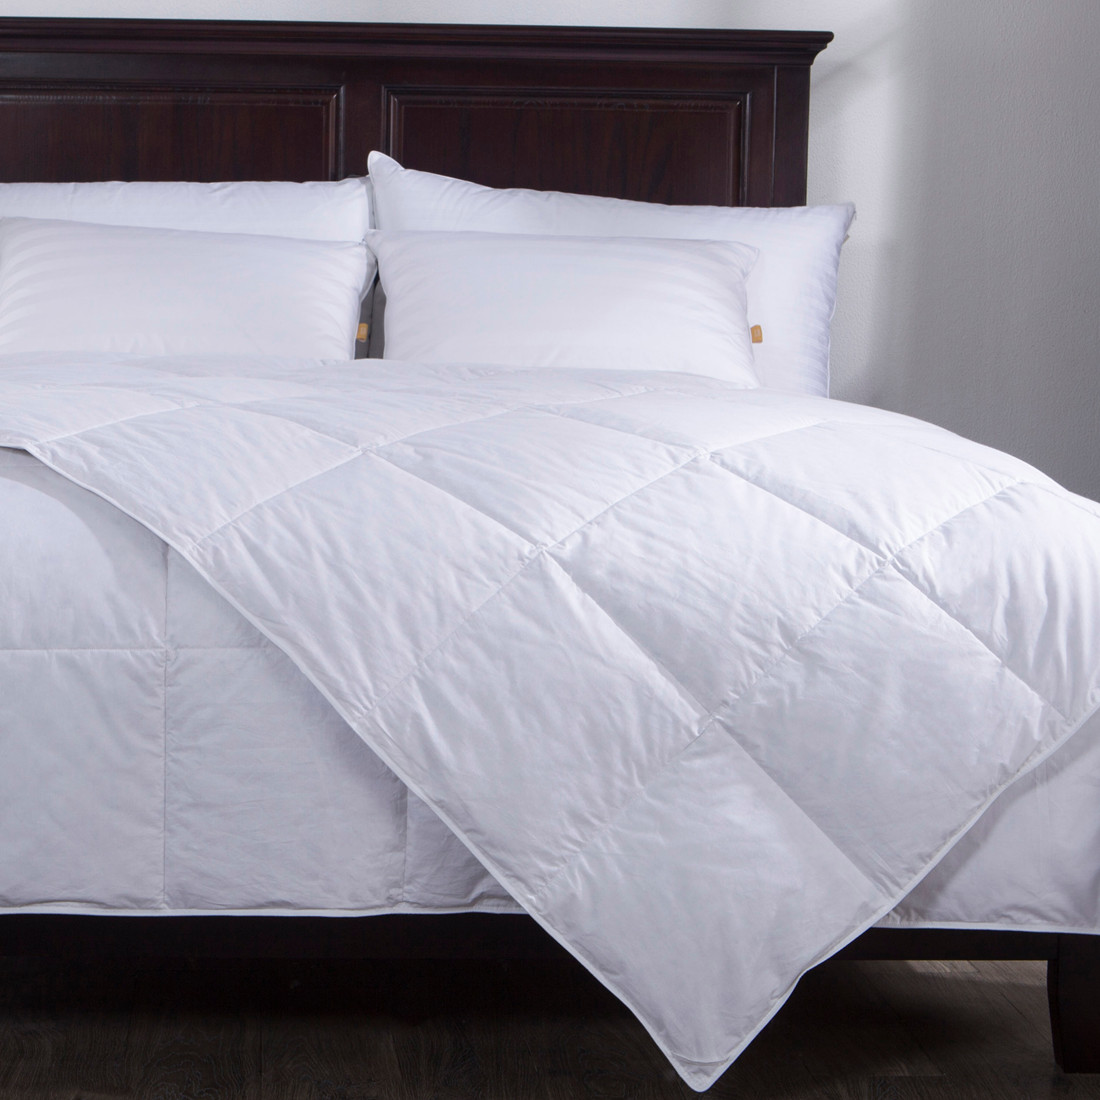 Puredown Lightweight Down Comforter Duvet Insert 100% Cotton 550 Fill Power, Twin Size, White